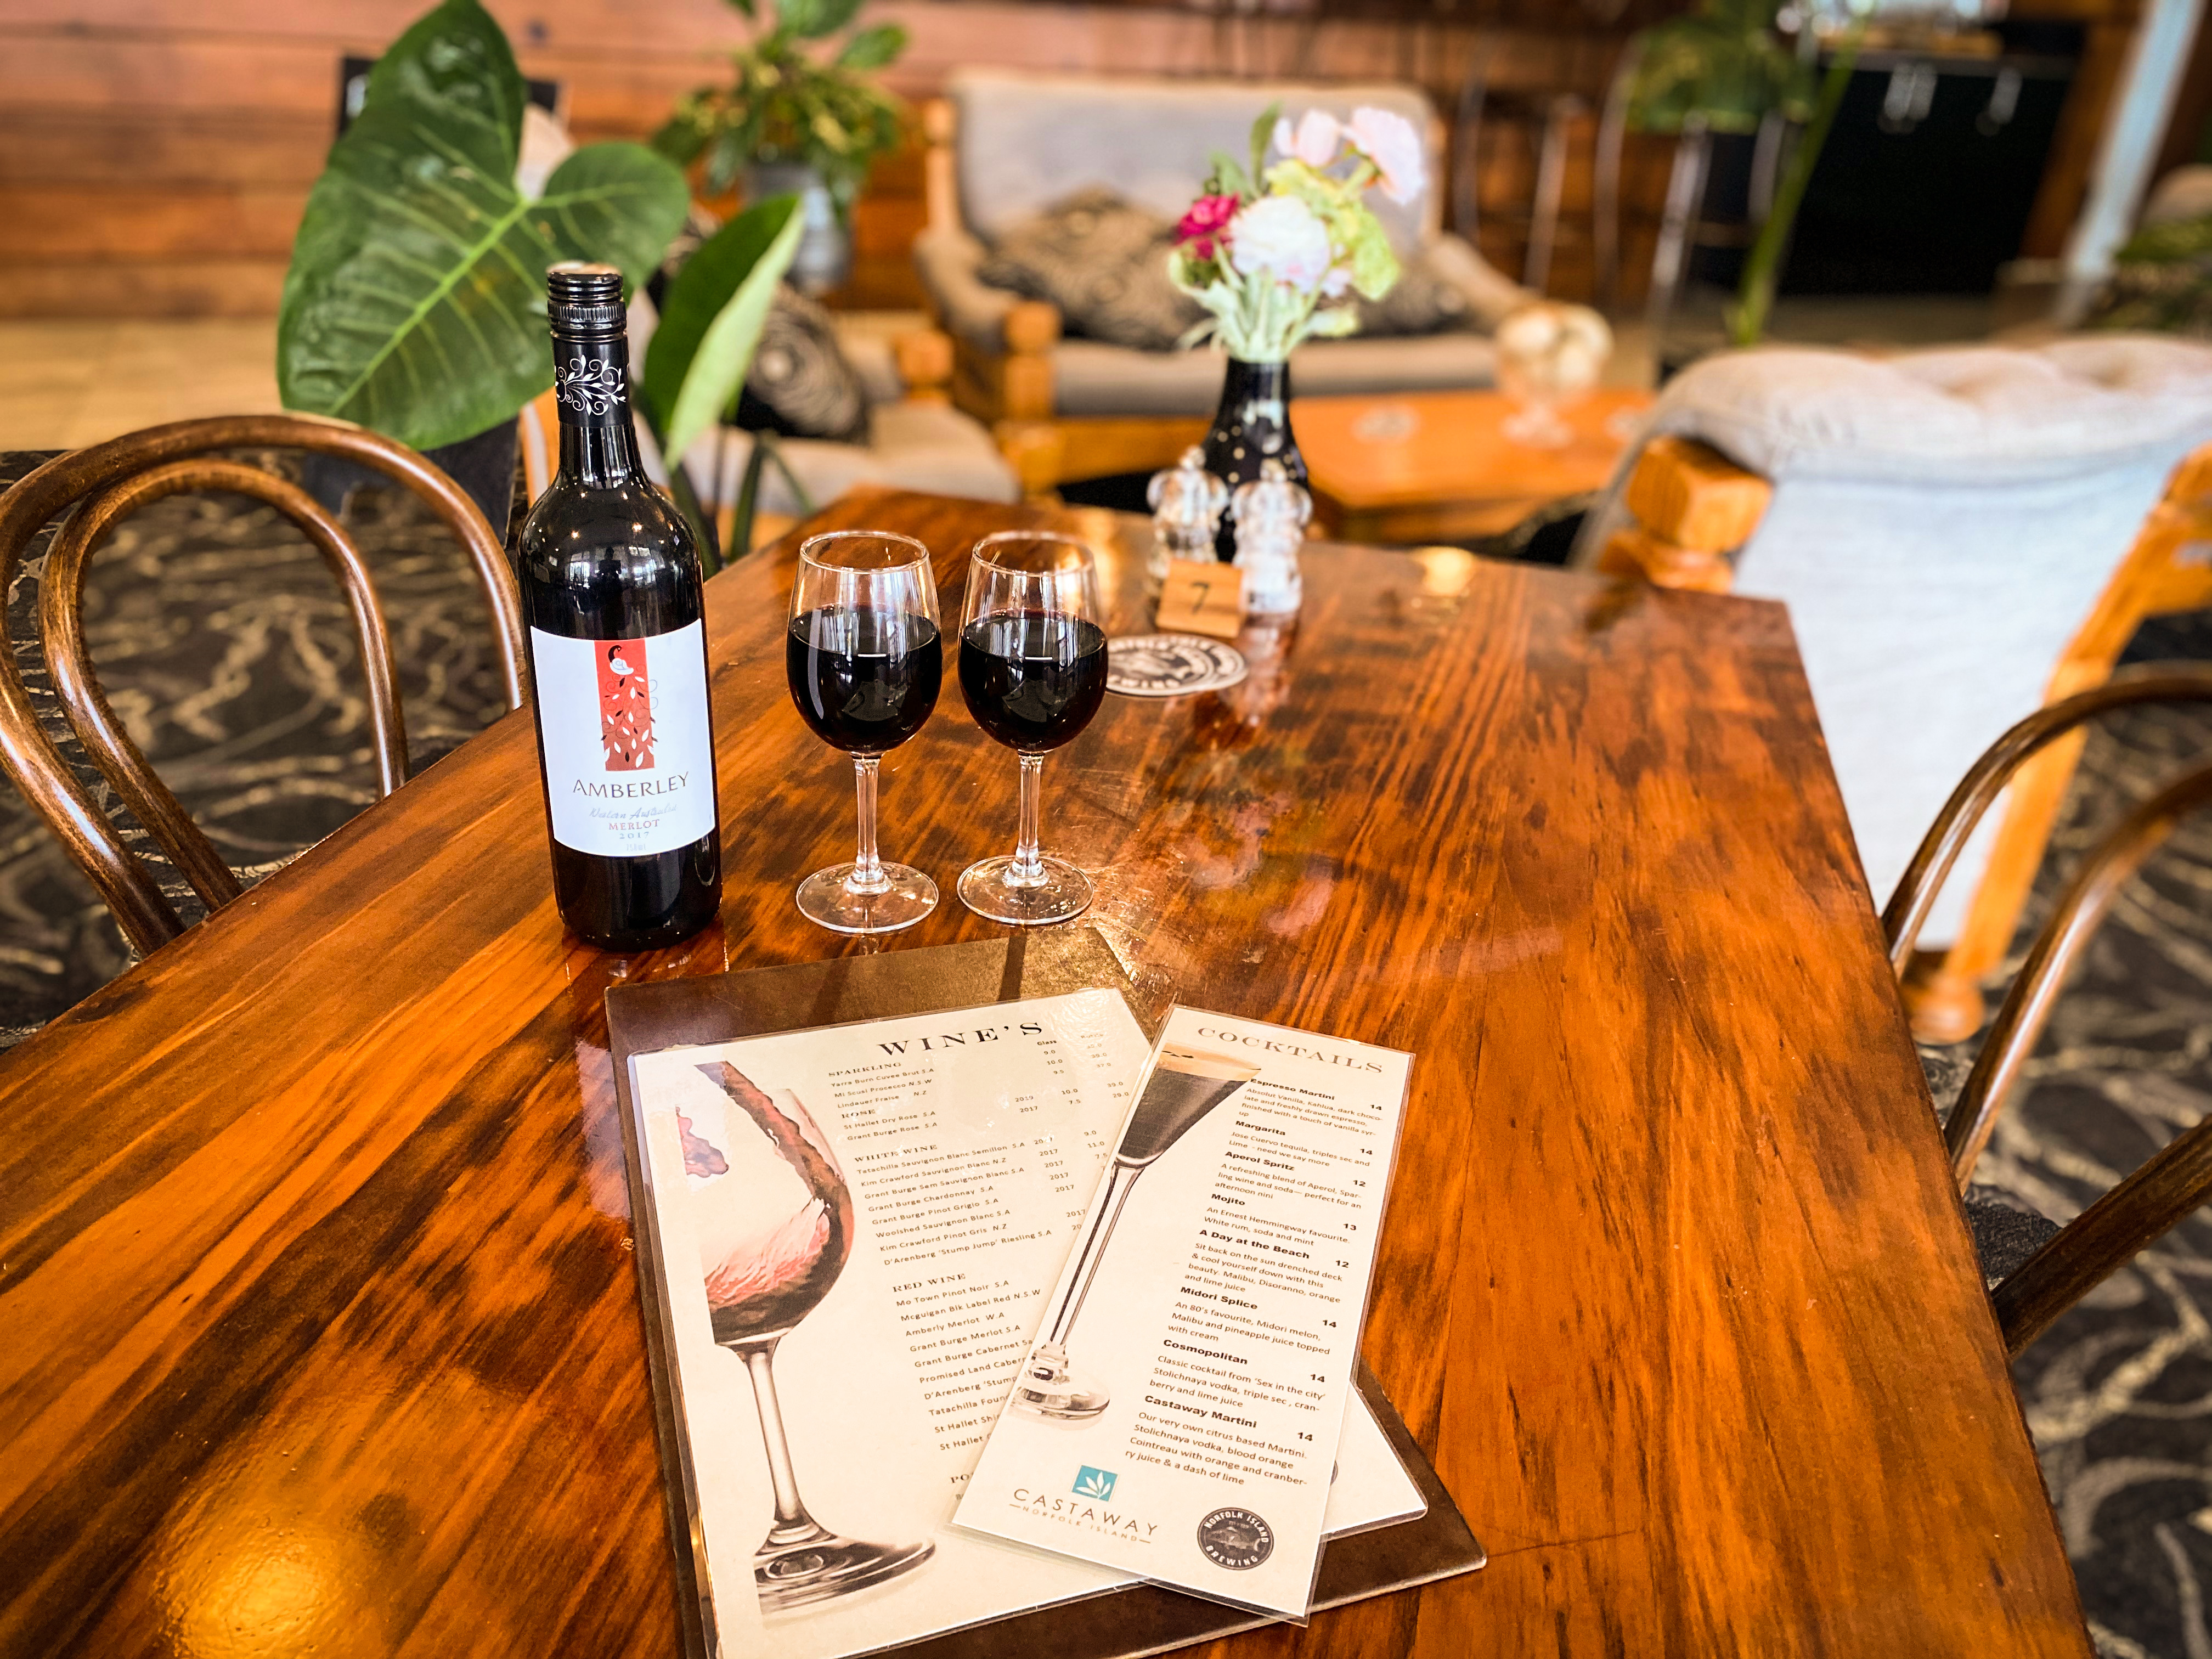 Wine and menus